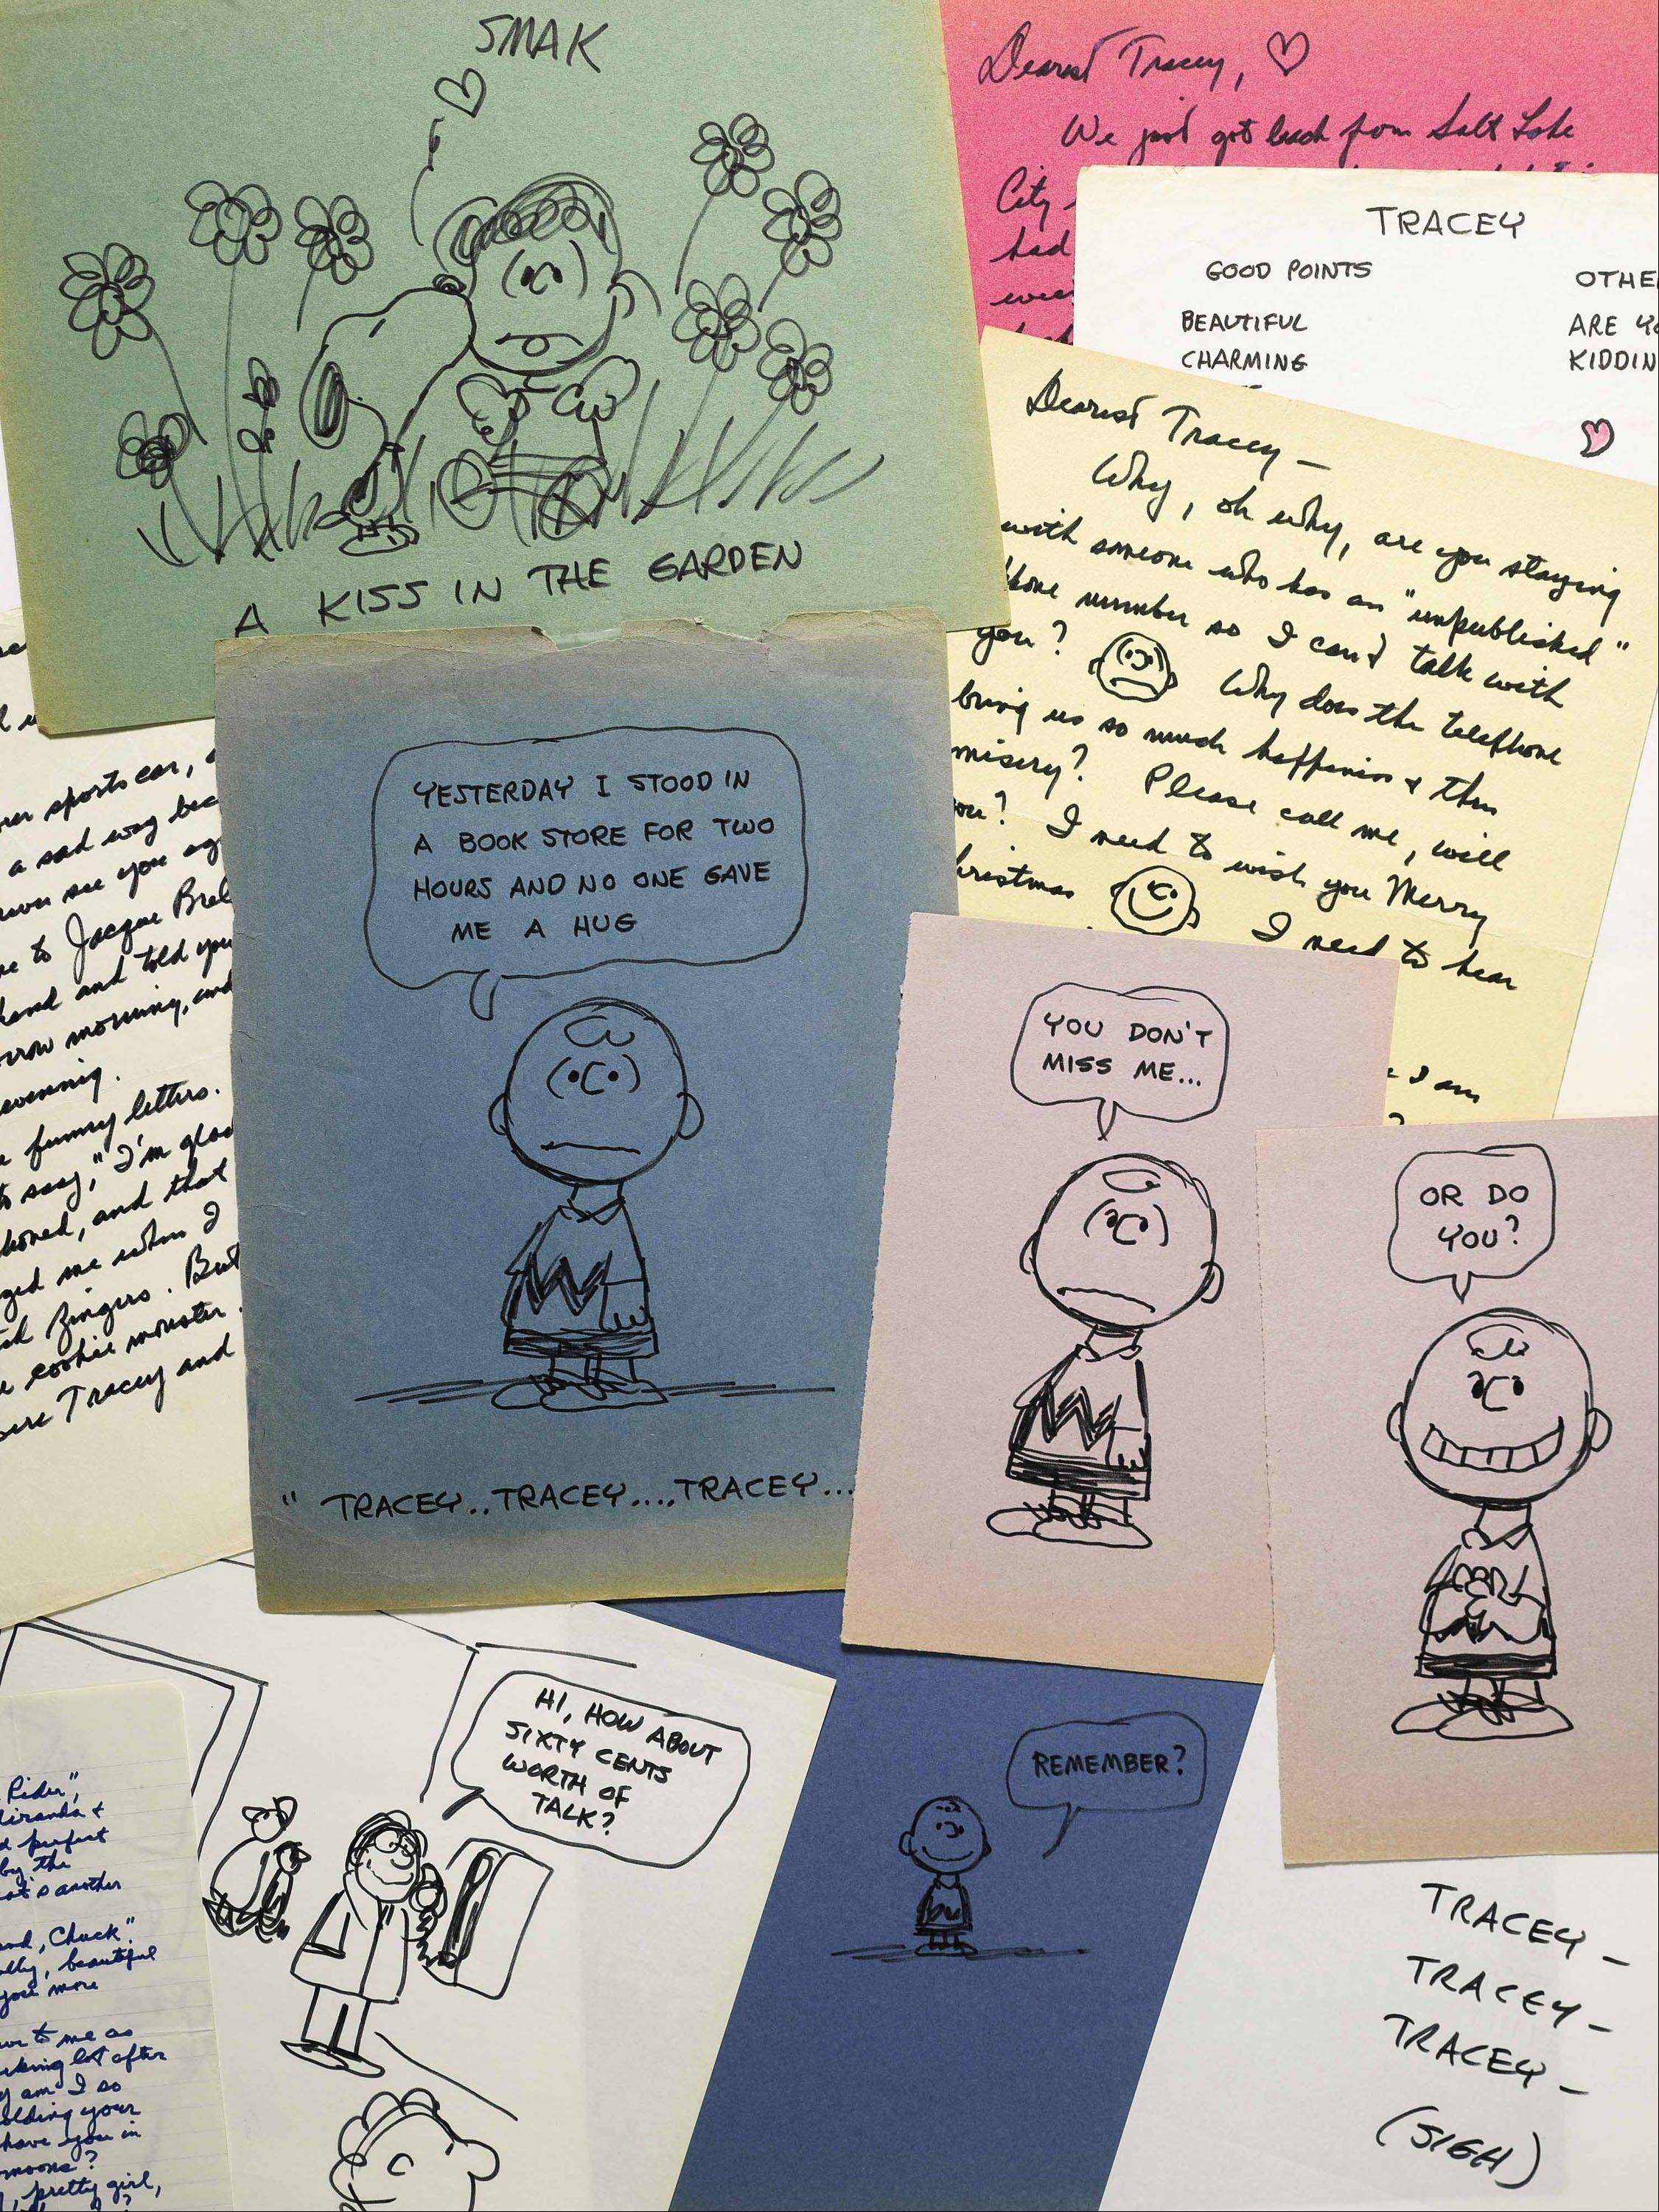 Some of the romantic letters and drawings the late Peanuts creator Charles Schulz sent to a young woman 23 years his junior, who infatuated him. The love notes from 1970-1971 are being offered for sale at Sotheby's in New York by the family of Tracey Claudius.